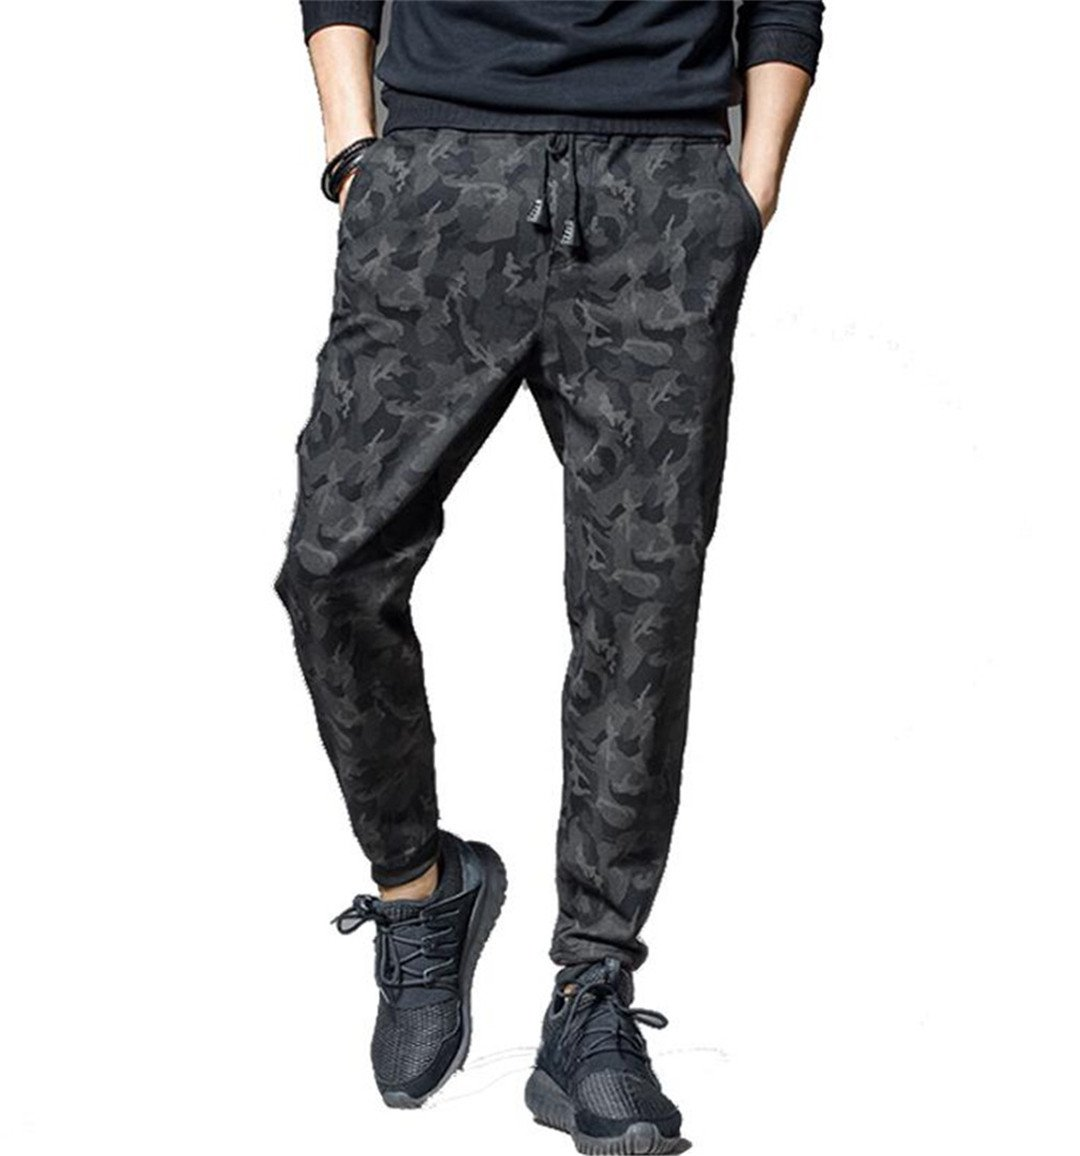 Workout Bodybuilding Clothing Casual Camouflage Sweatpants black 4XL